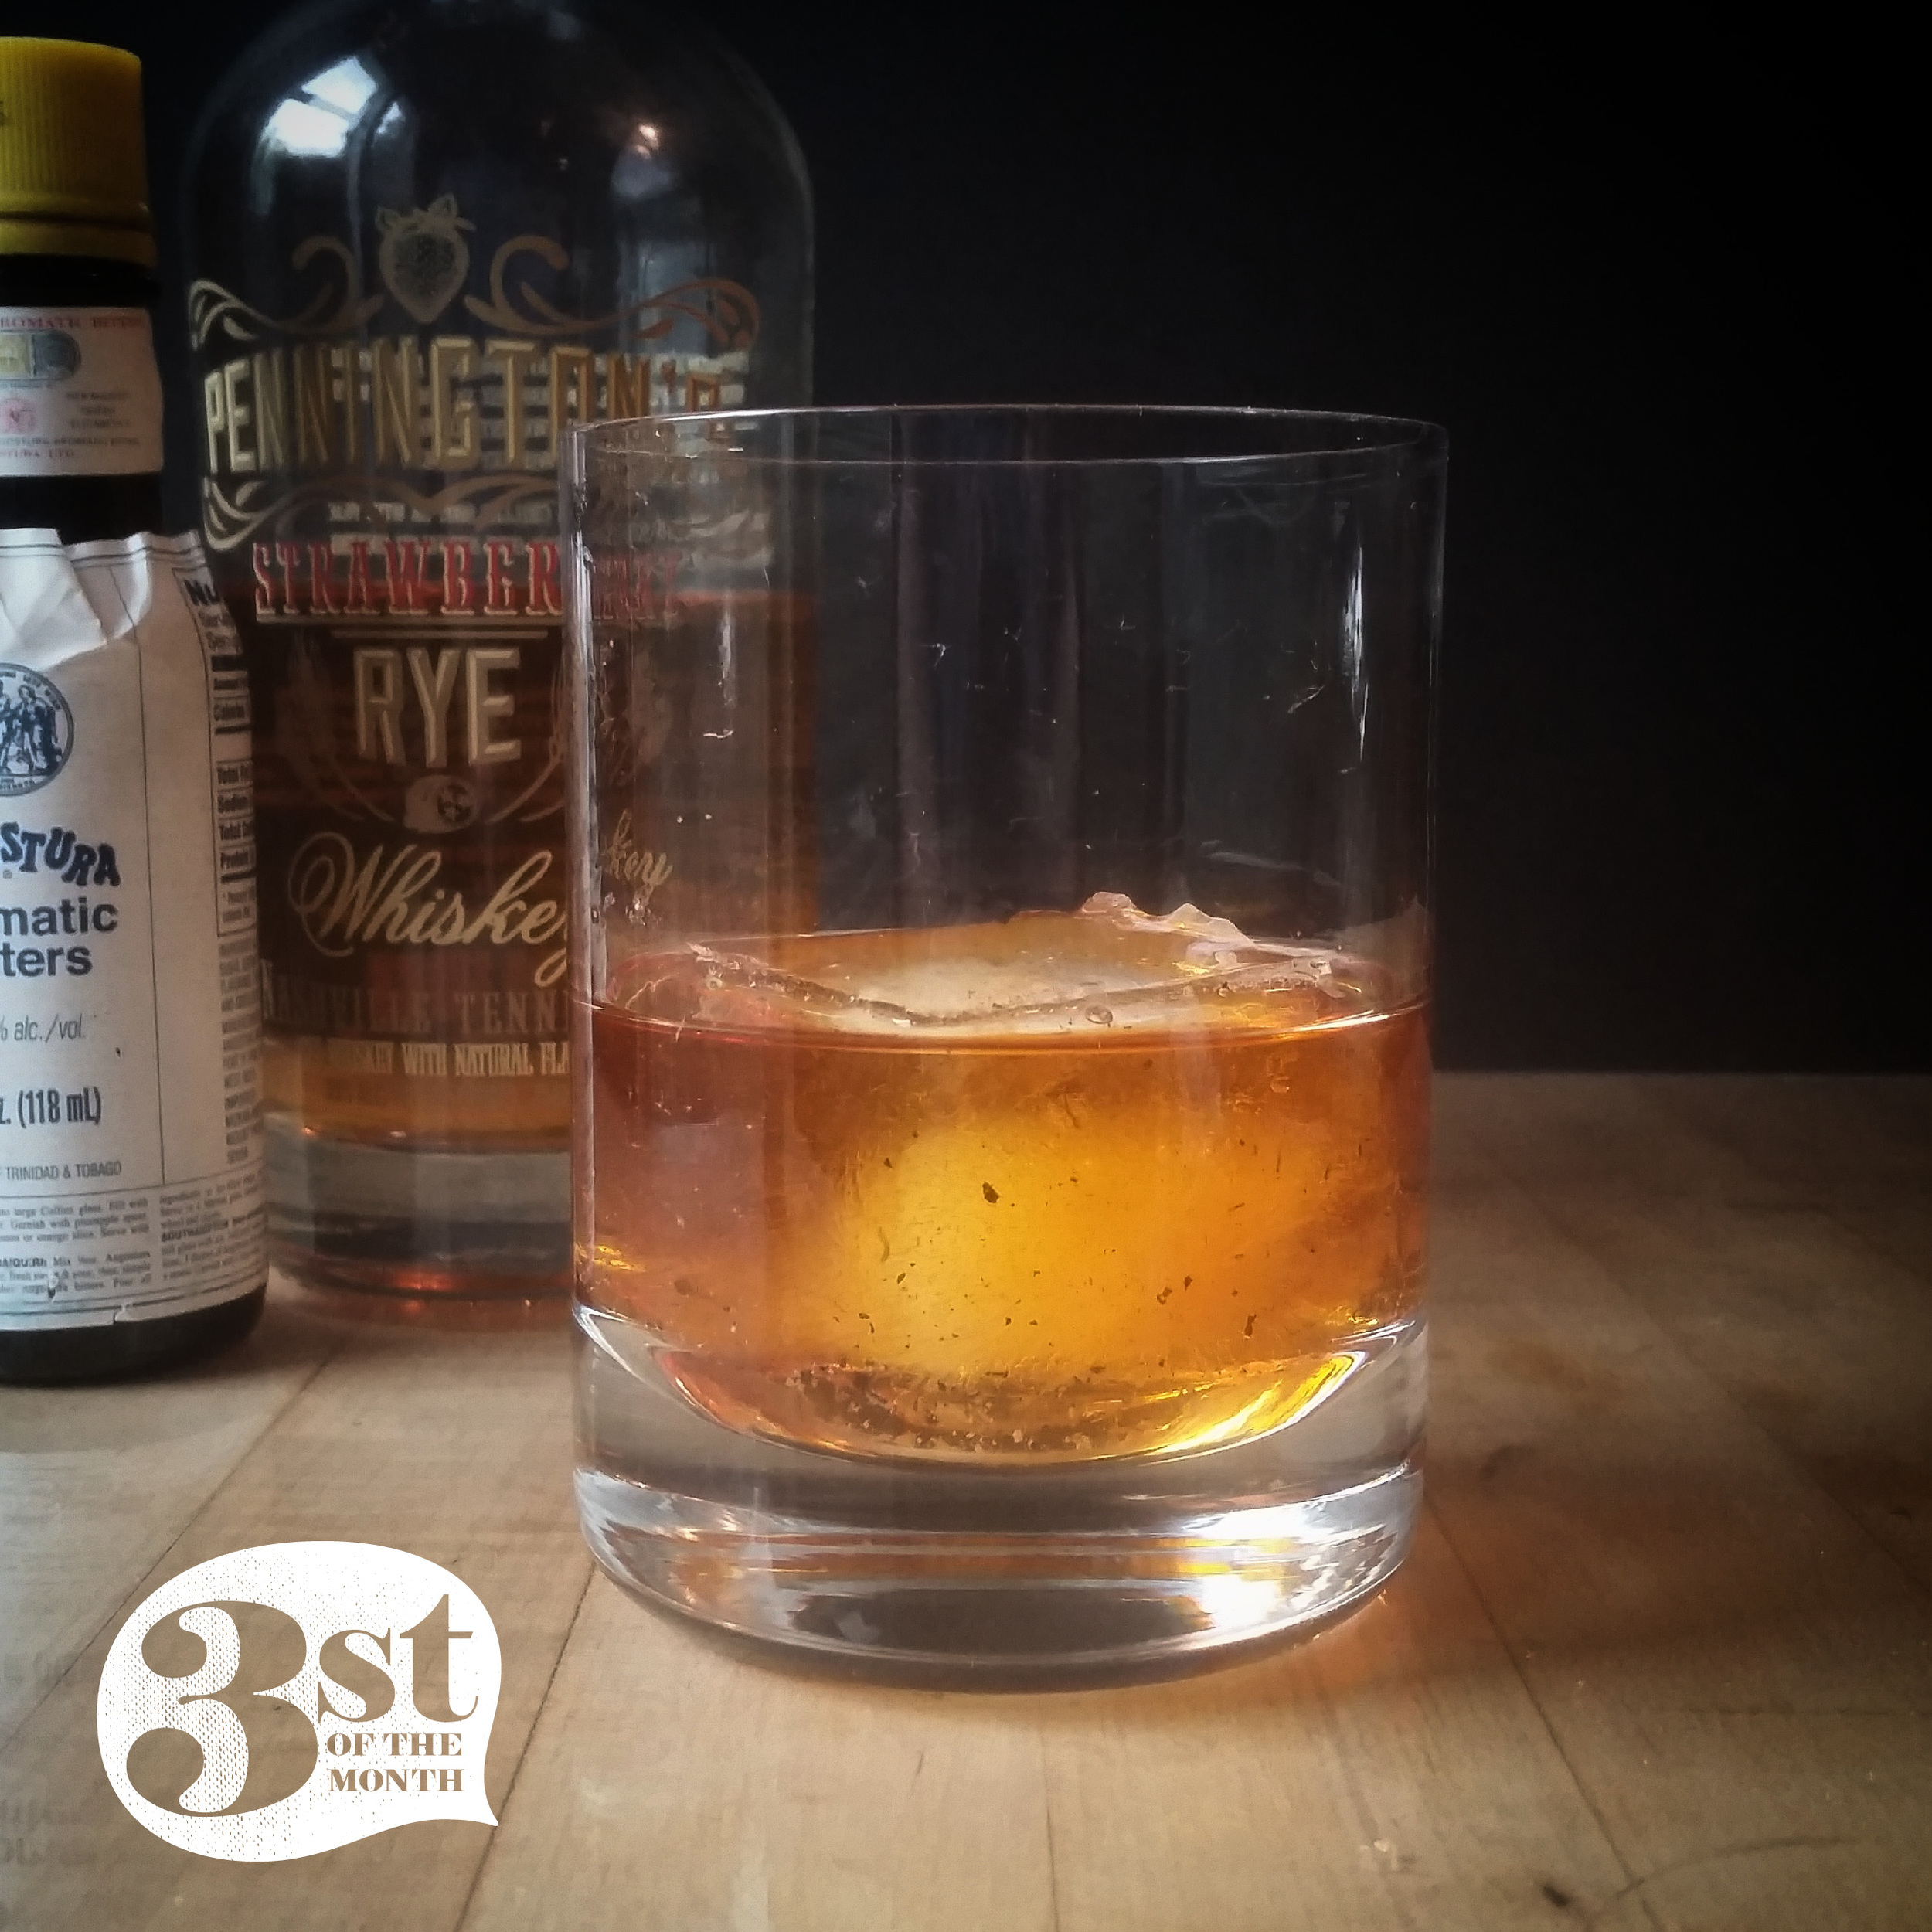 Pennington's Re-Fashioned cocktail made with Pennington's Strawberry Rye Whiskey